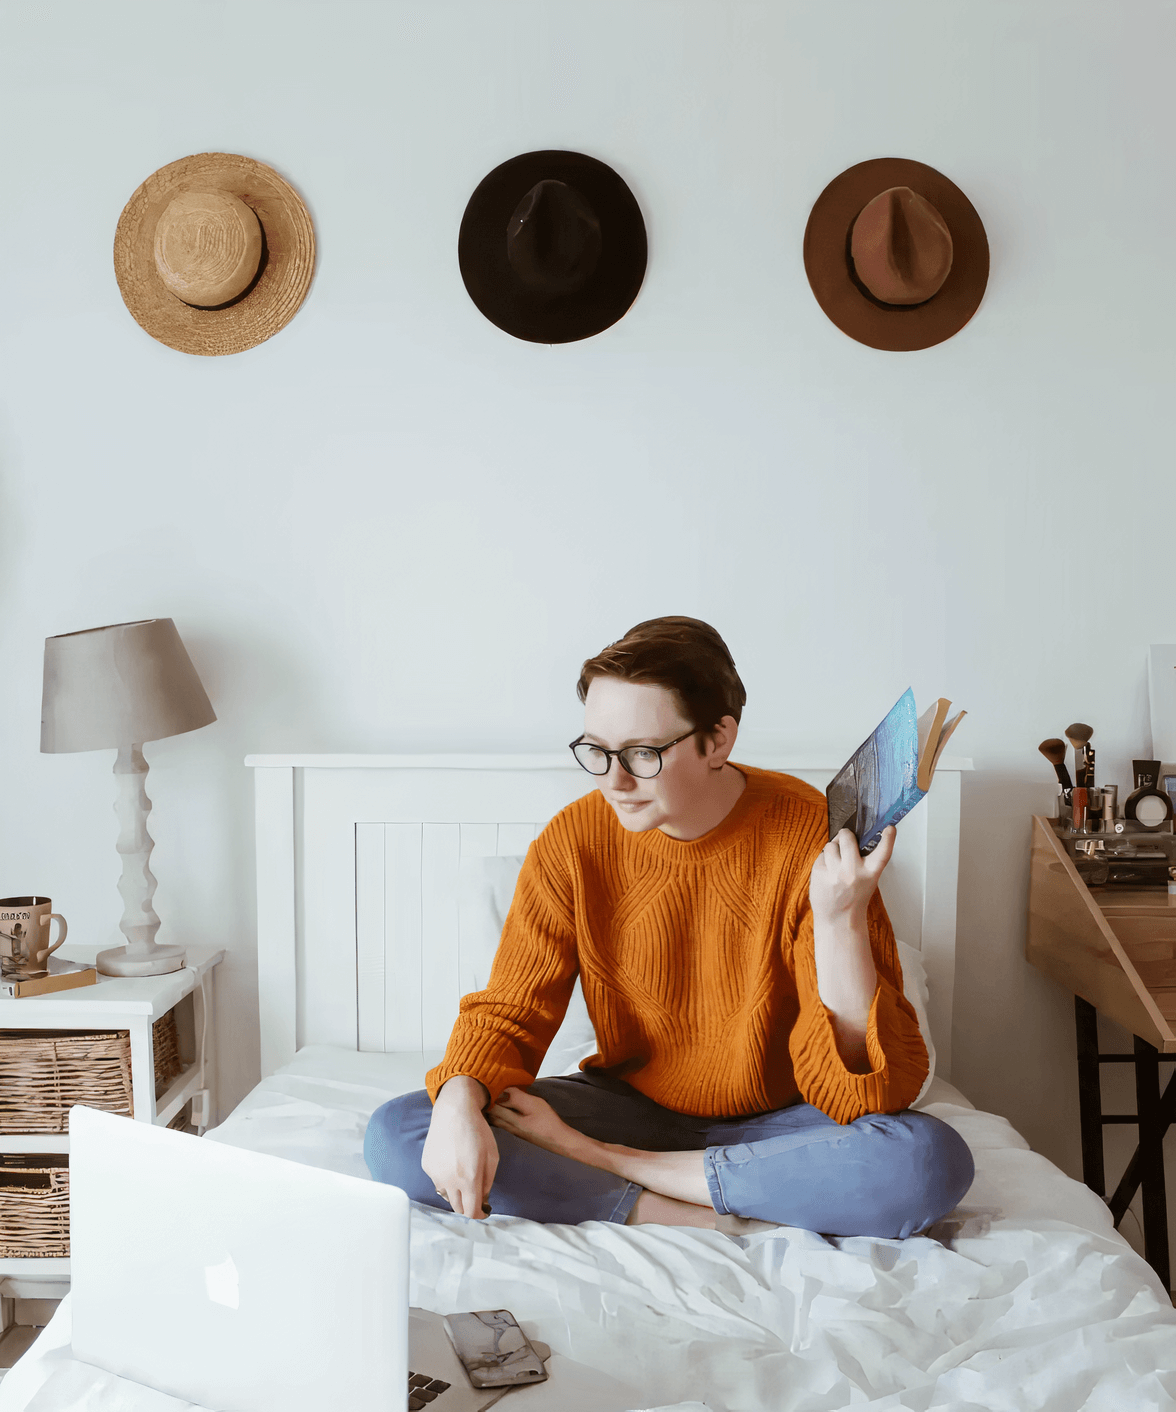 Image of a girl sitting on a bed, looking like she is making a decision